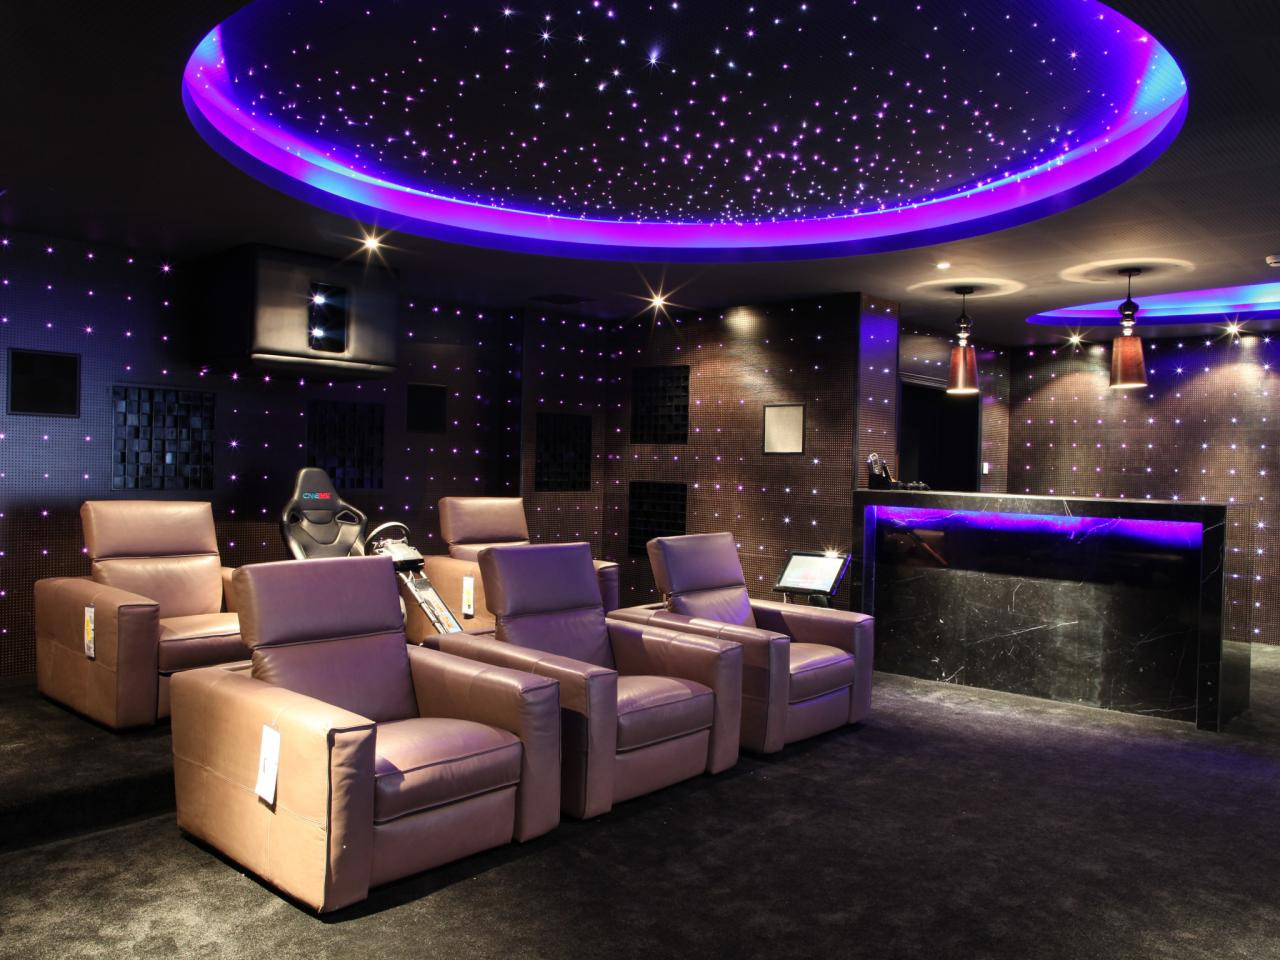 Home Cinema Designs Home theater Design Ideas Tips & Options